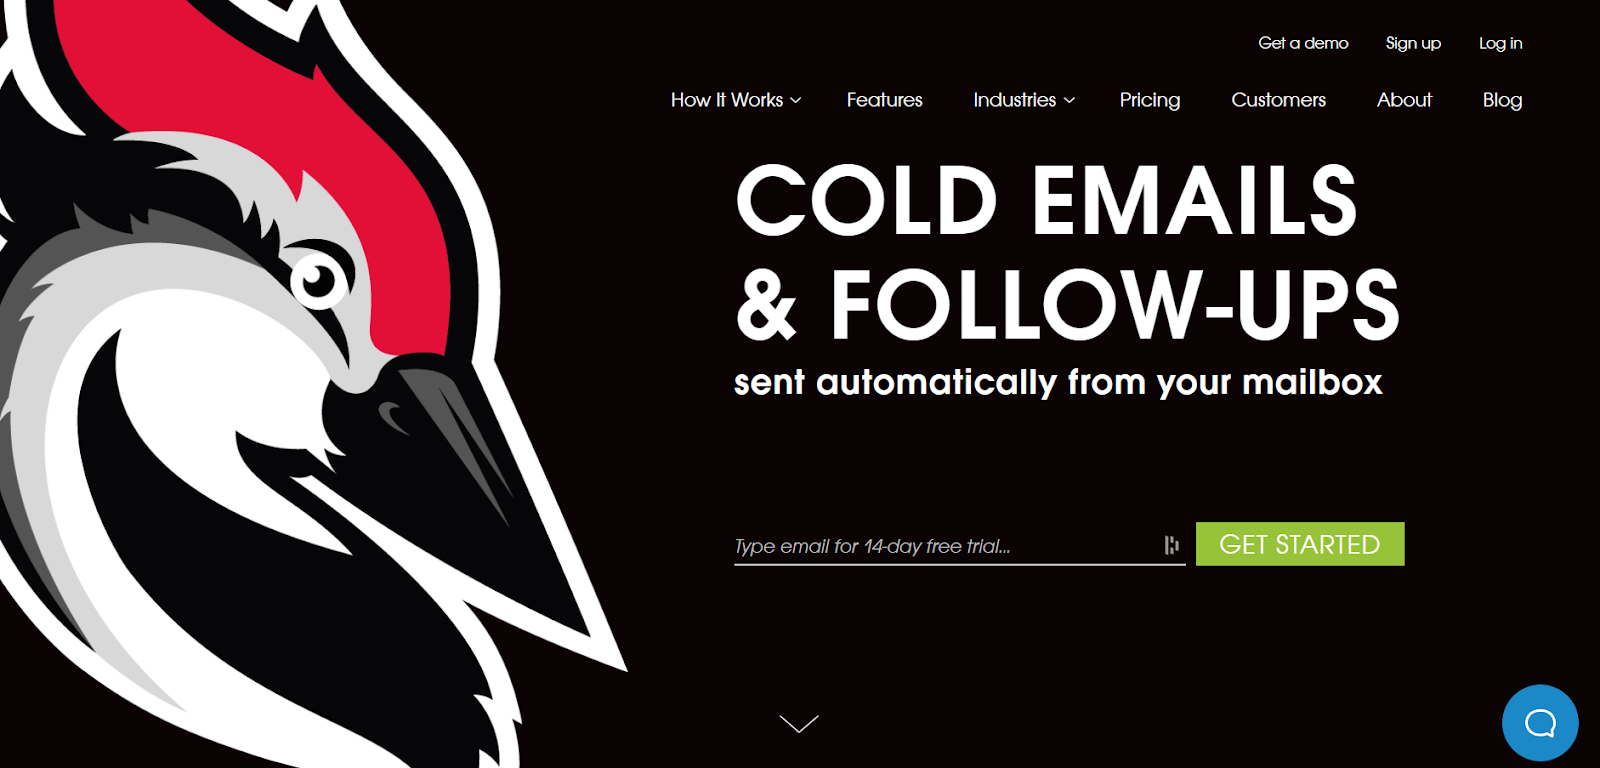 cold email marketing tools for small business